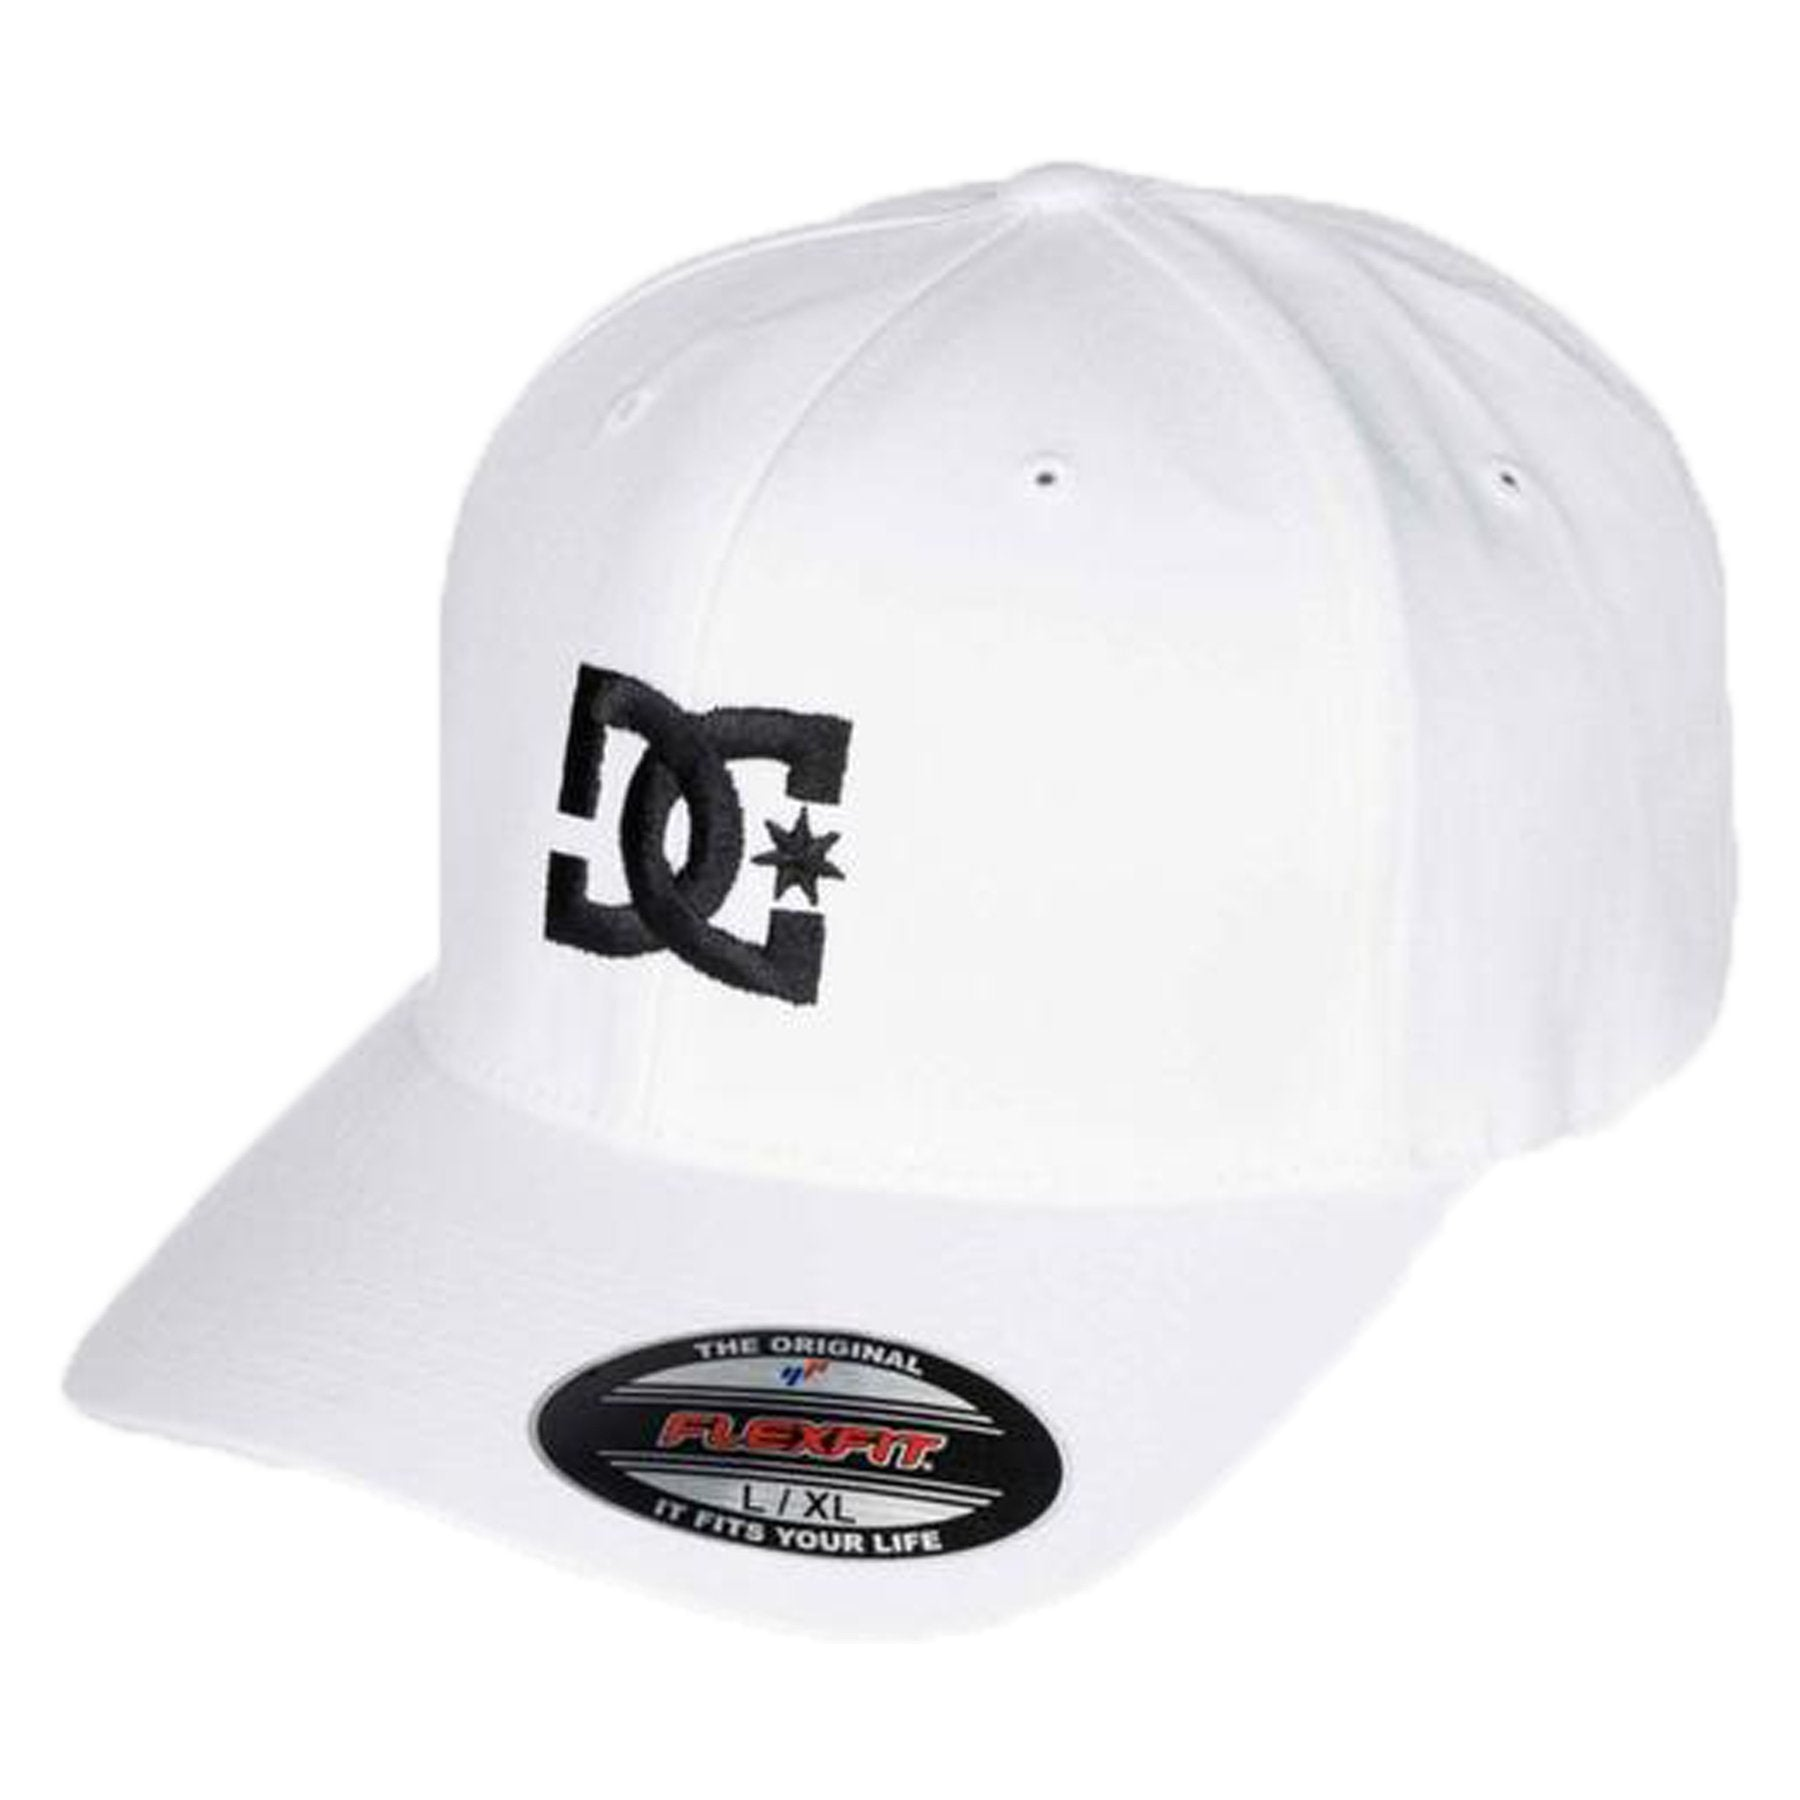 Surf Shop, Surf Clothing, DC Shoes, Cap Star 2, Caps, White